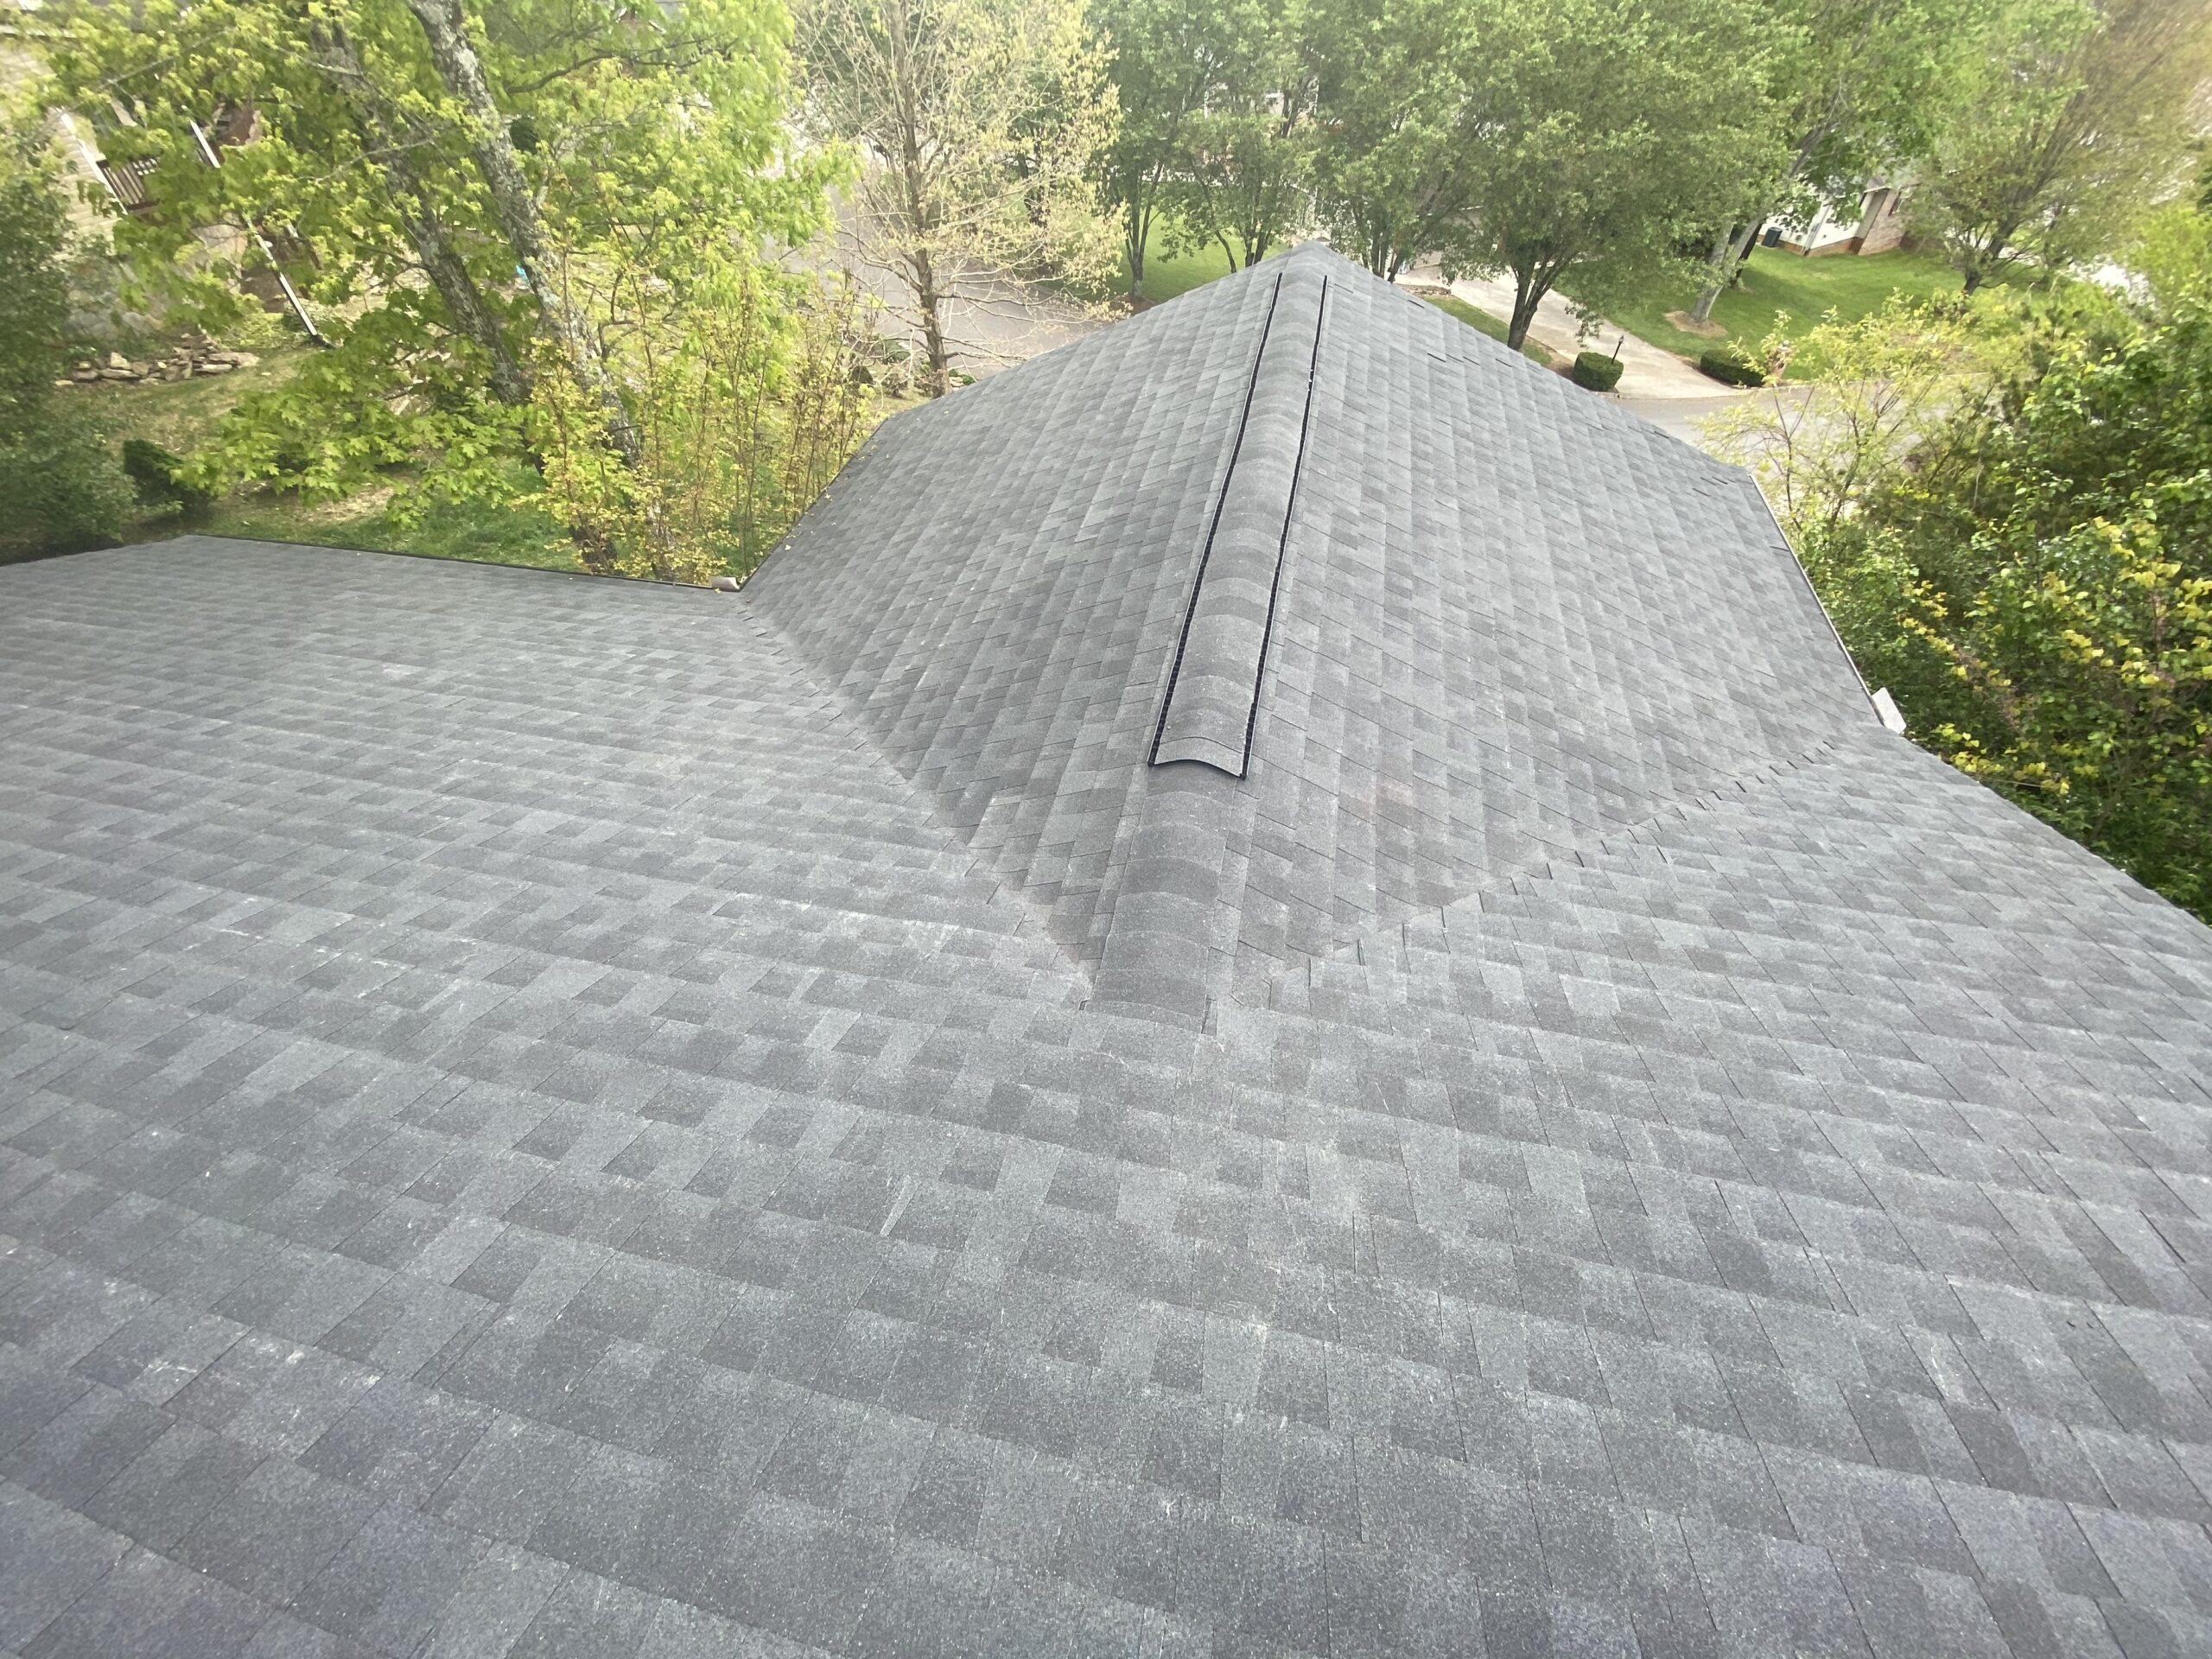 This is a picture of two valleys on a new roof